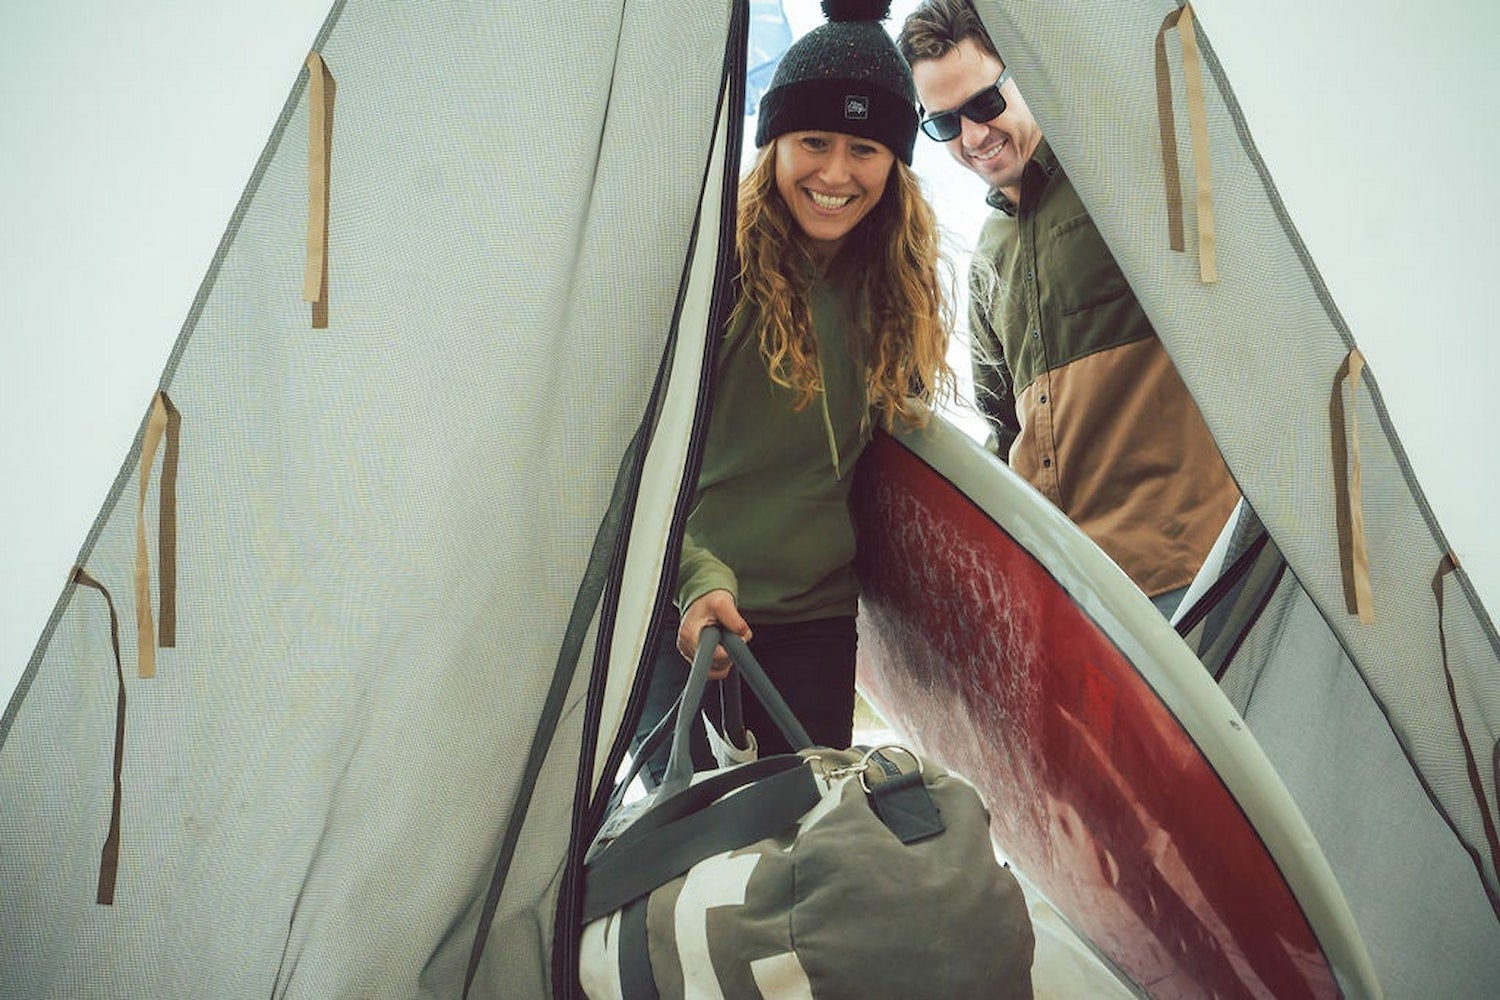 Campers walking into canvas platform tent with luggage and surfboards at rockaway.